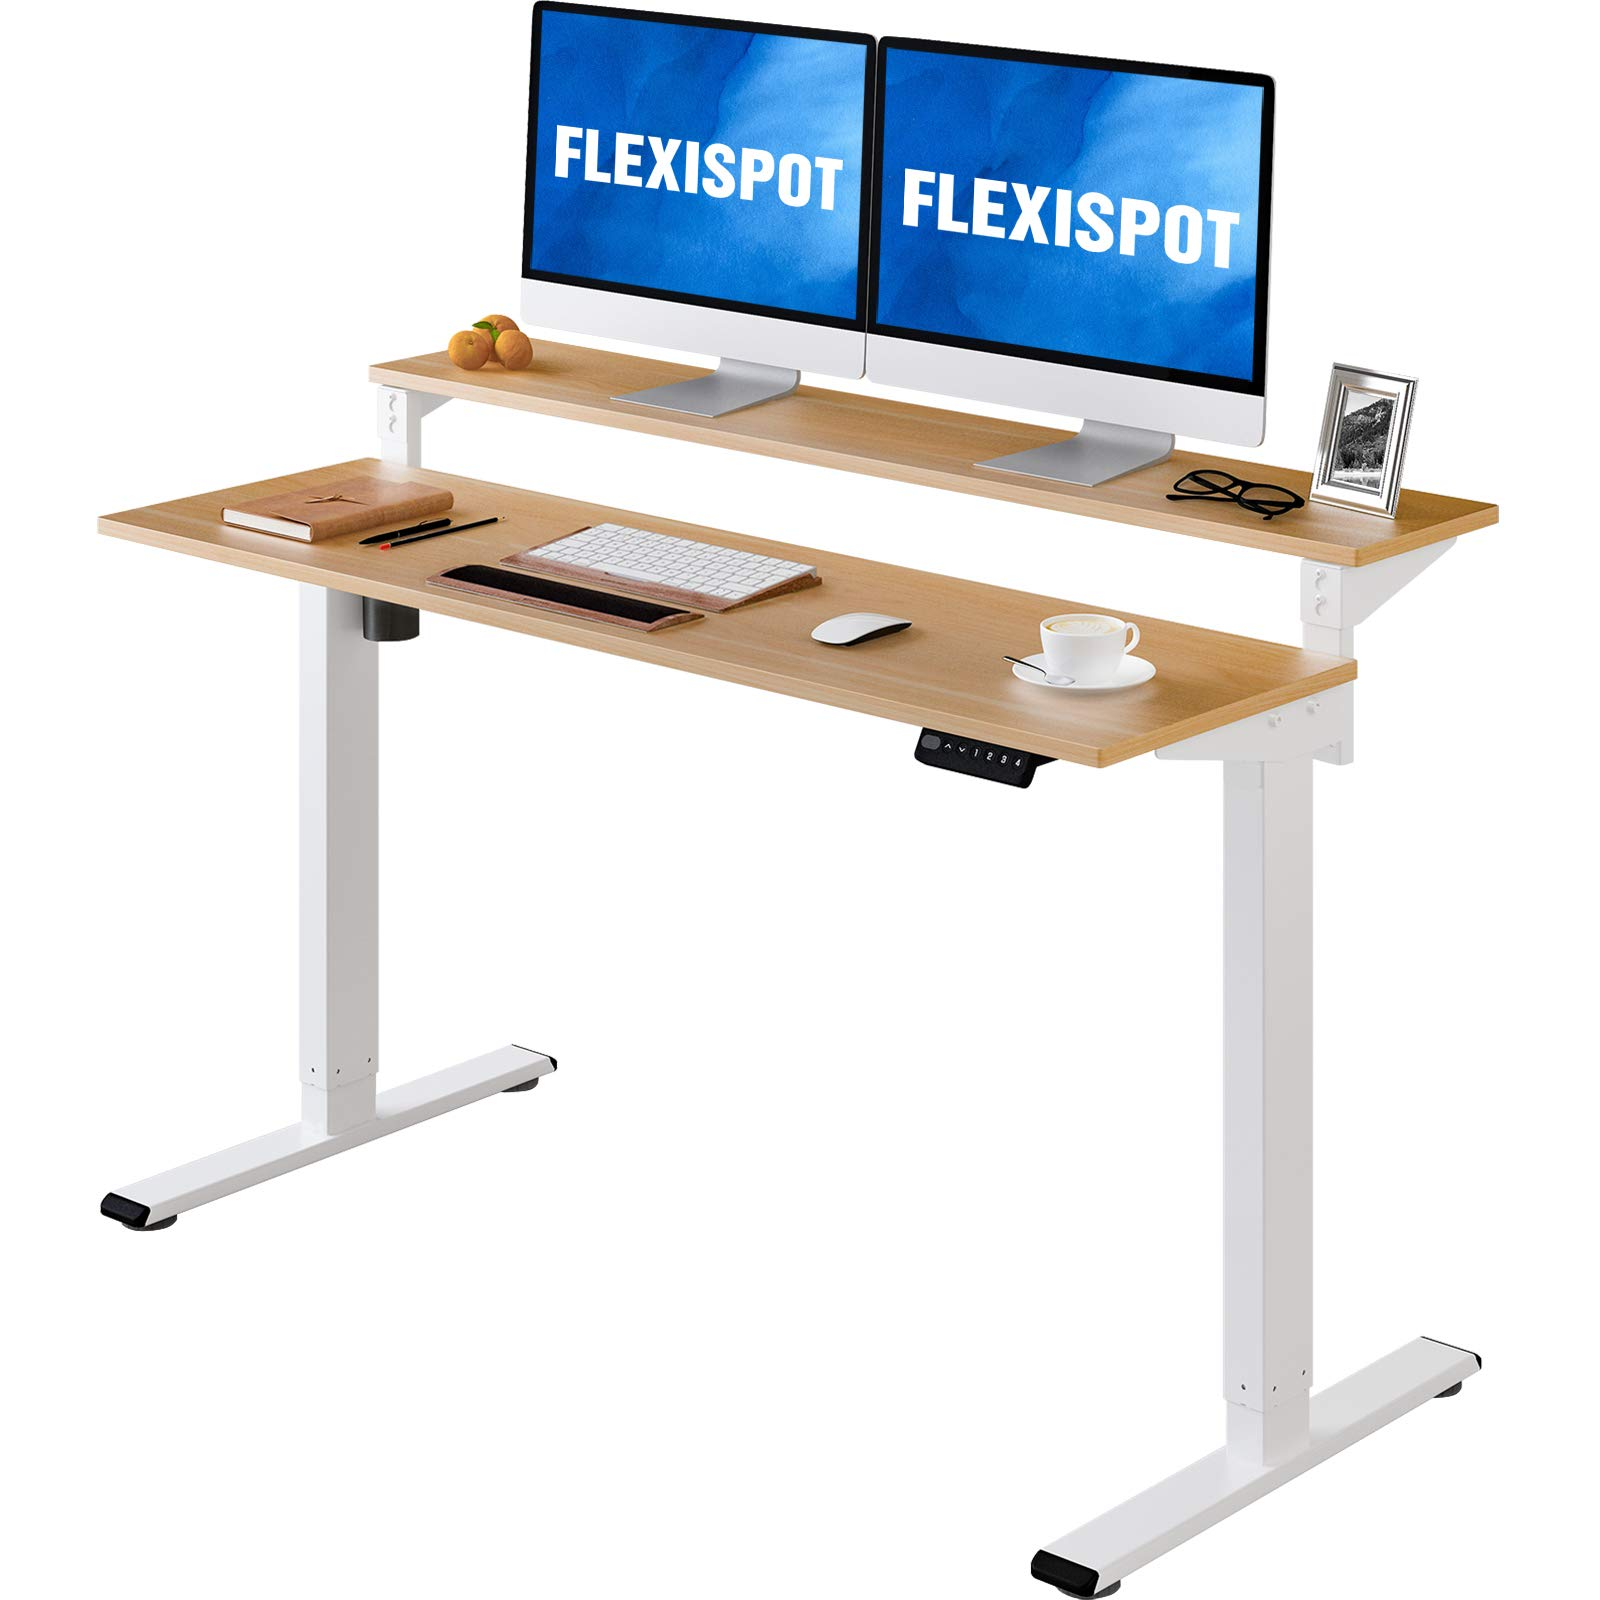 Flexispot Vici EF1 2 Tier Standing Desk 55 in Electric Height Adjustable Computer Desk with Adjustable Shelf Dual Tier Stand Up Desk Memory Controller for Home Office (White Frame + Natural Top)